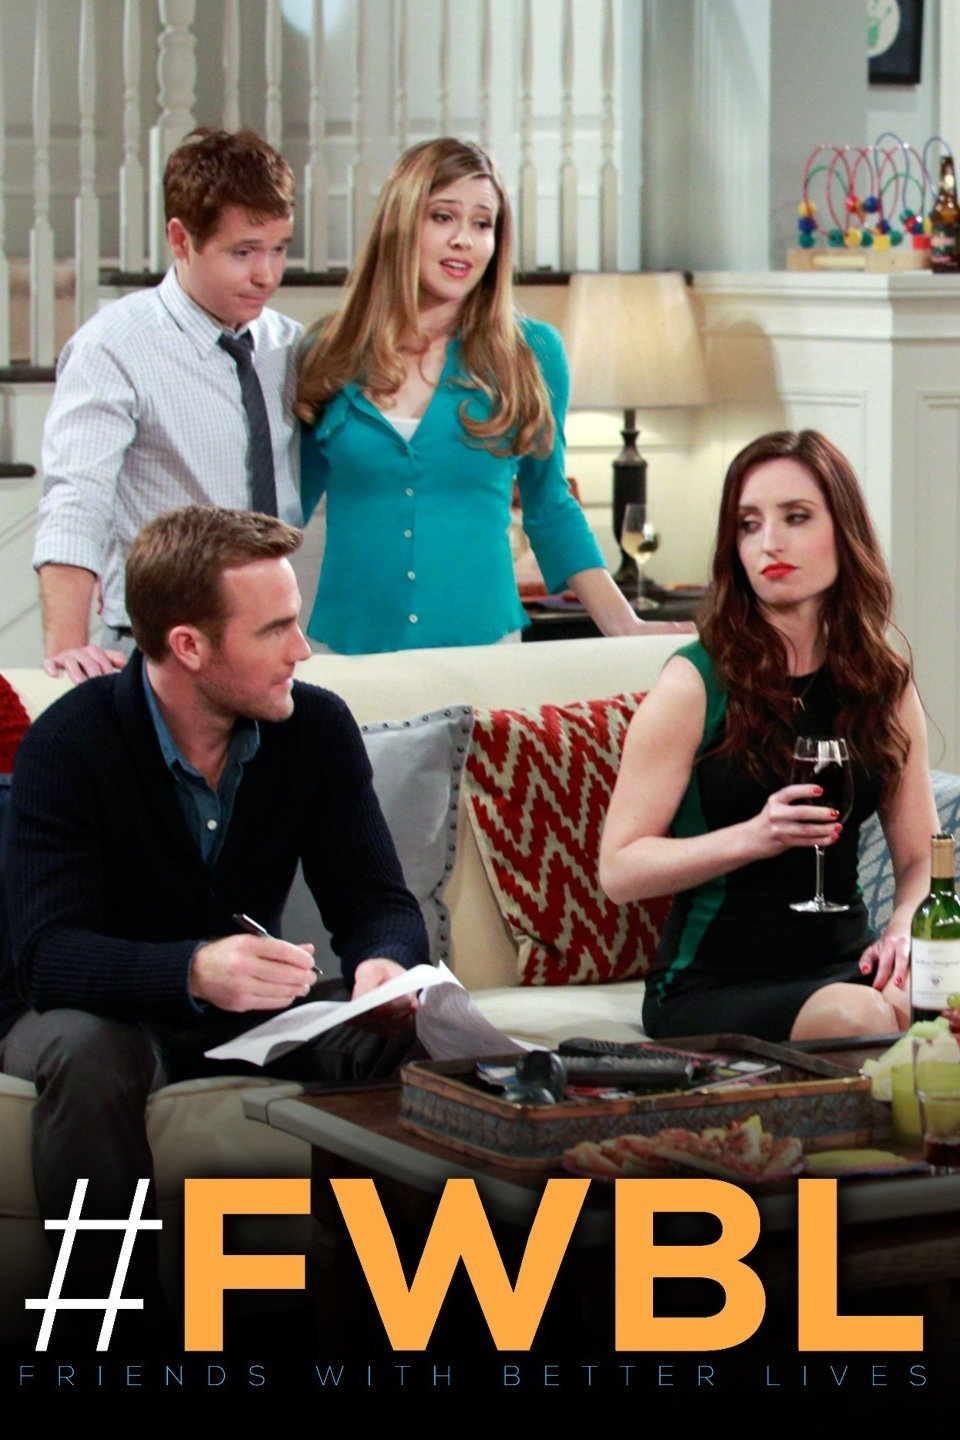 Friends with Better Lives Season 1 Complete Download 480p HDTV Micromkv